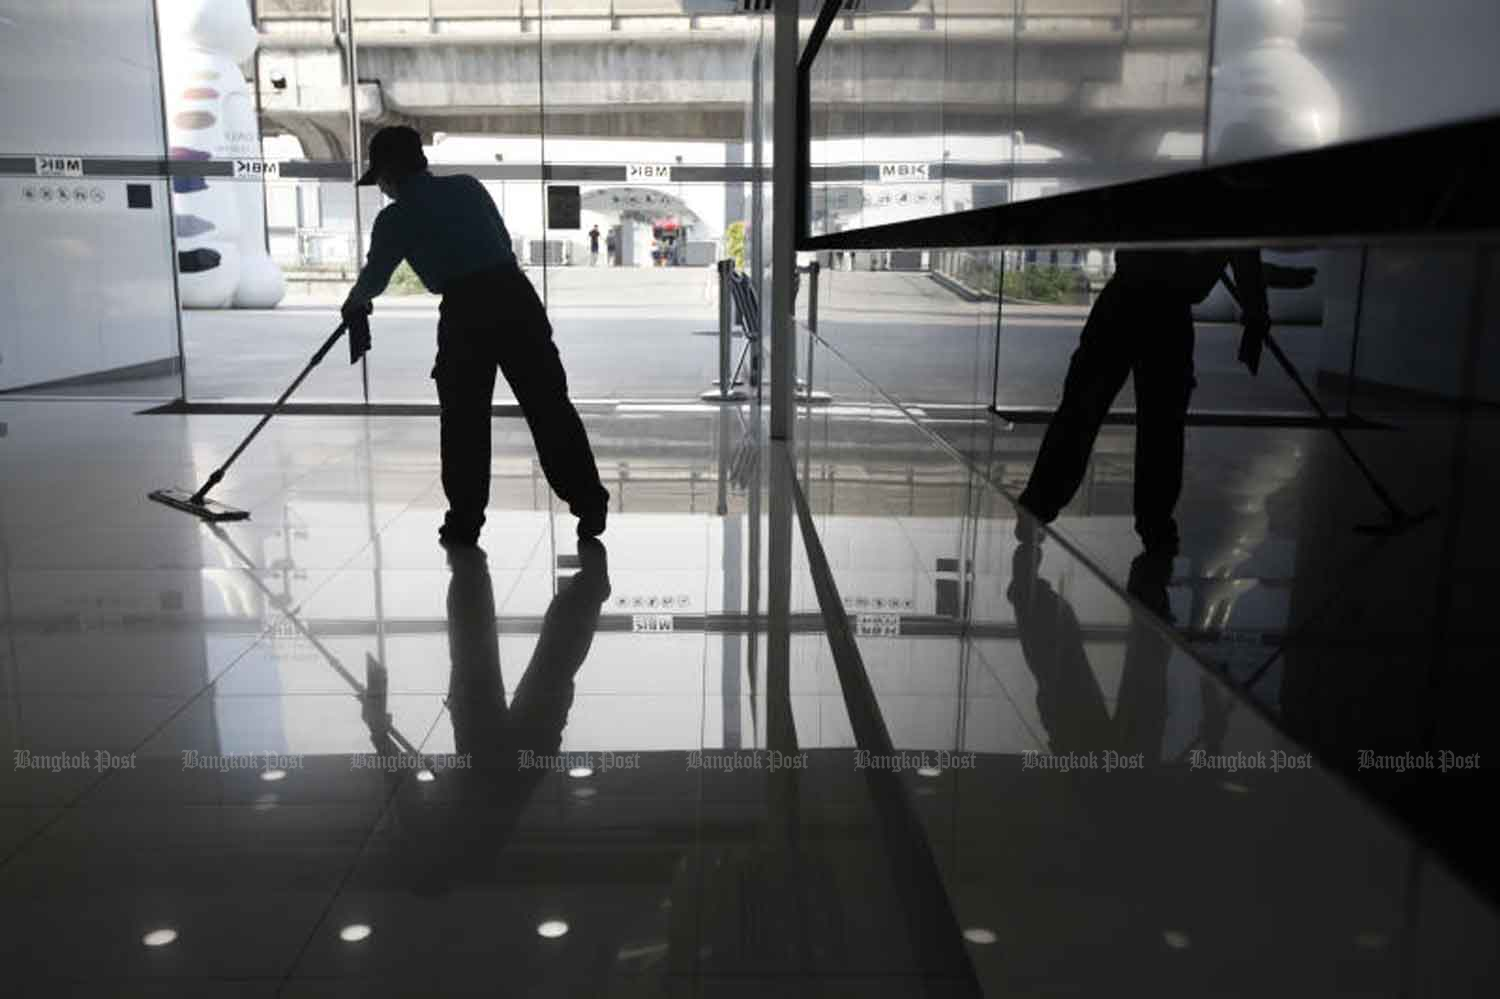 A cleaner is at work at the MBK shopping centre in Pathumwan district of Bangkok. The obvious disappearance of tourists causes Kasikorn Research Center to predict a meagre economic growth this year. (Photo by Wichan Charoenkiatpakul)